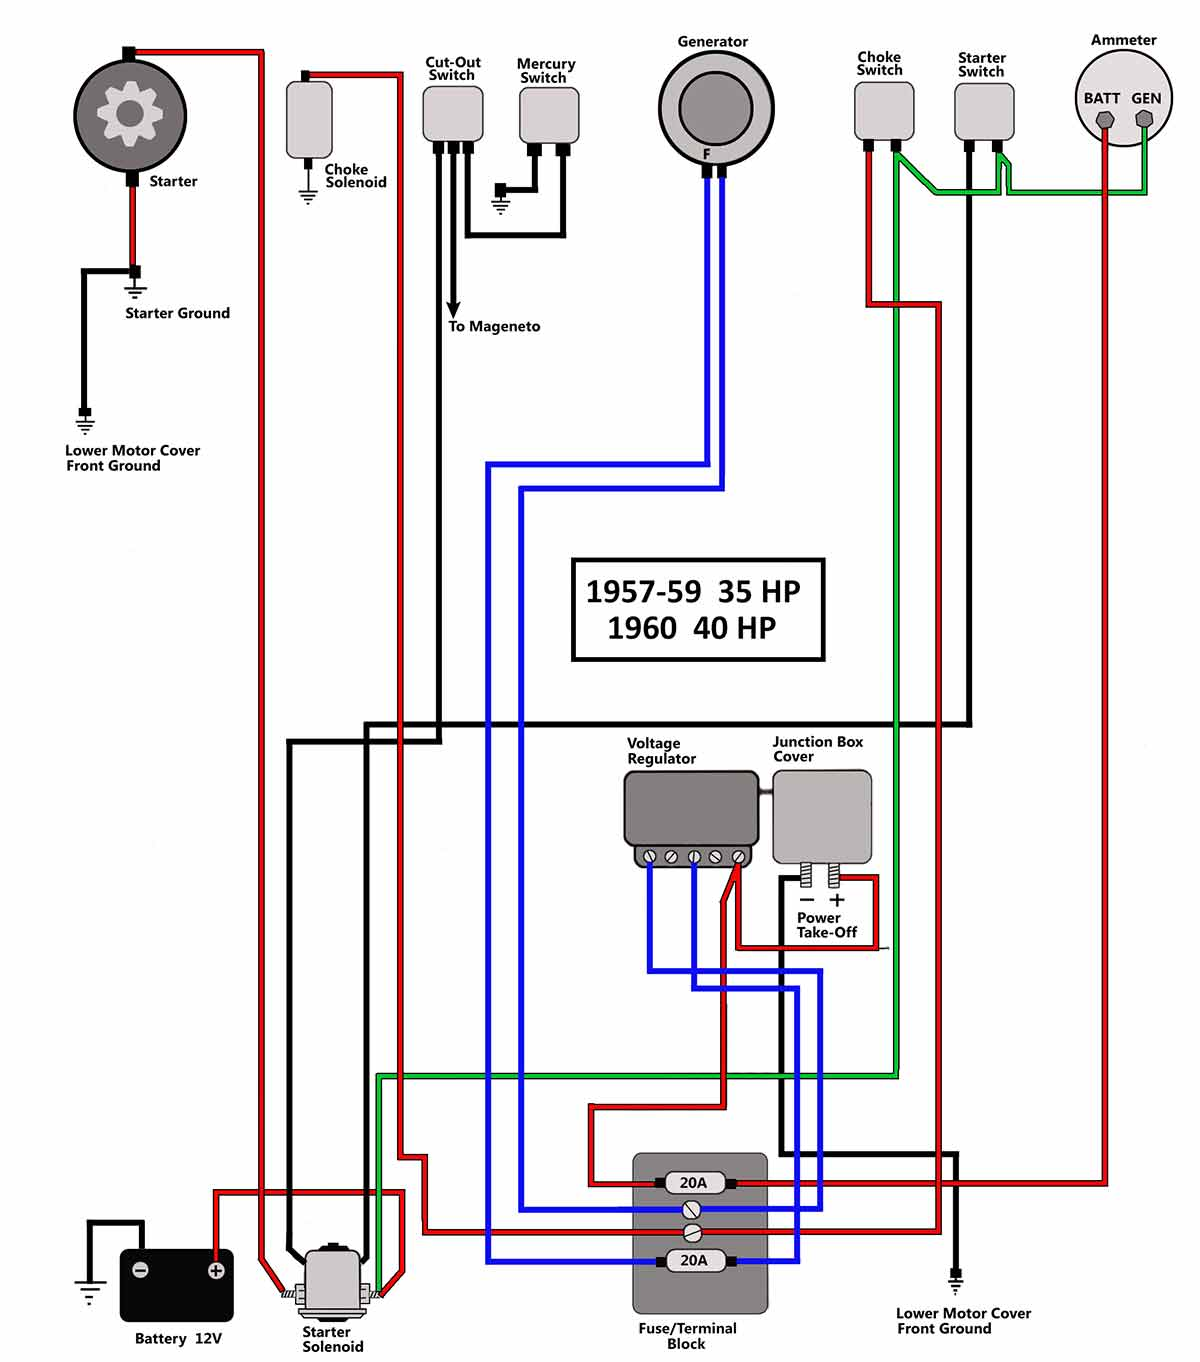 1957 60_35 40 help with wiring ignition and connecting battery to 1973 40hp wiring diagram for 30 hp johnson motor at eliteediting.co